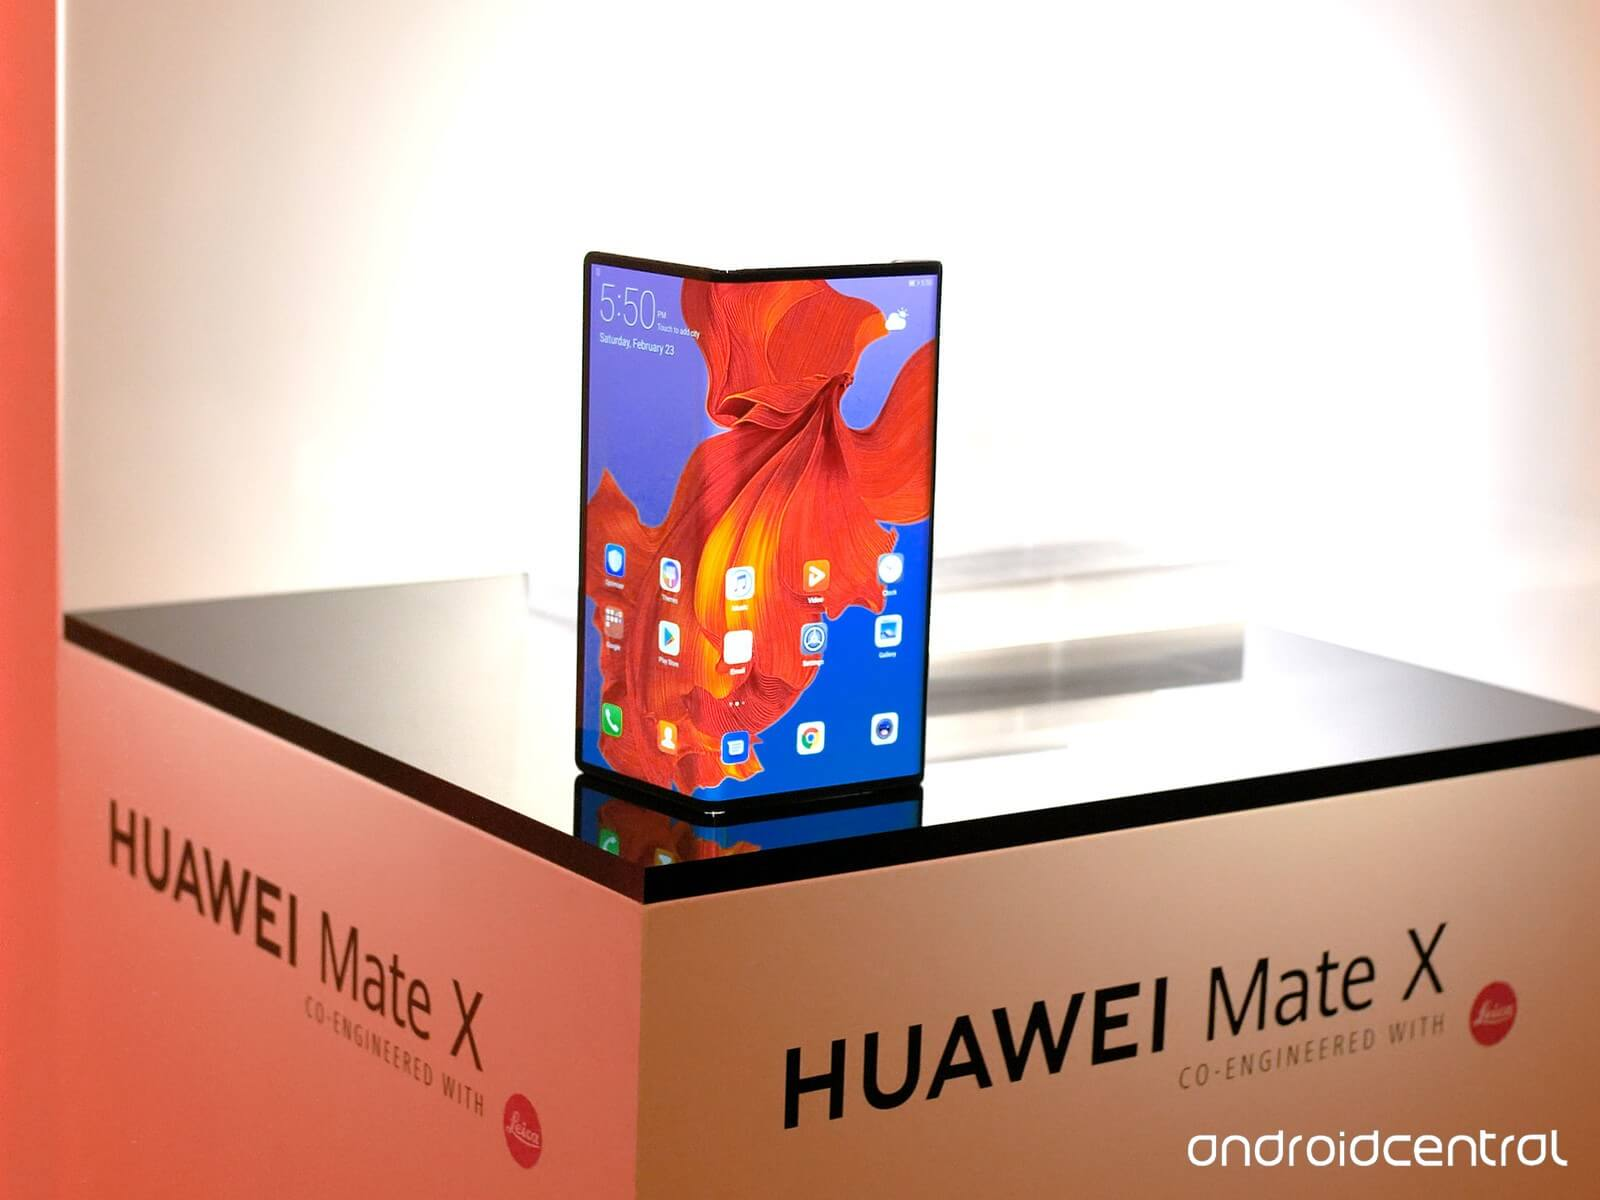 New Huawei Mate X smartphone at Mobile World Congress 2019